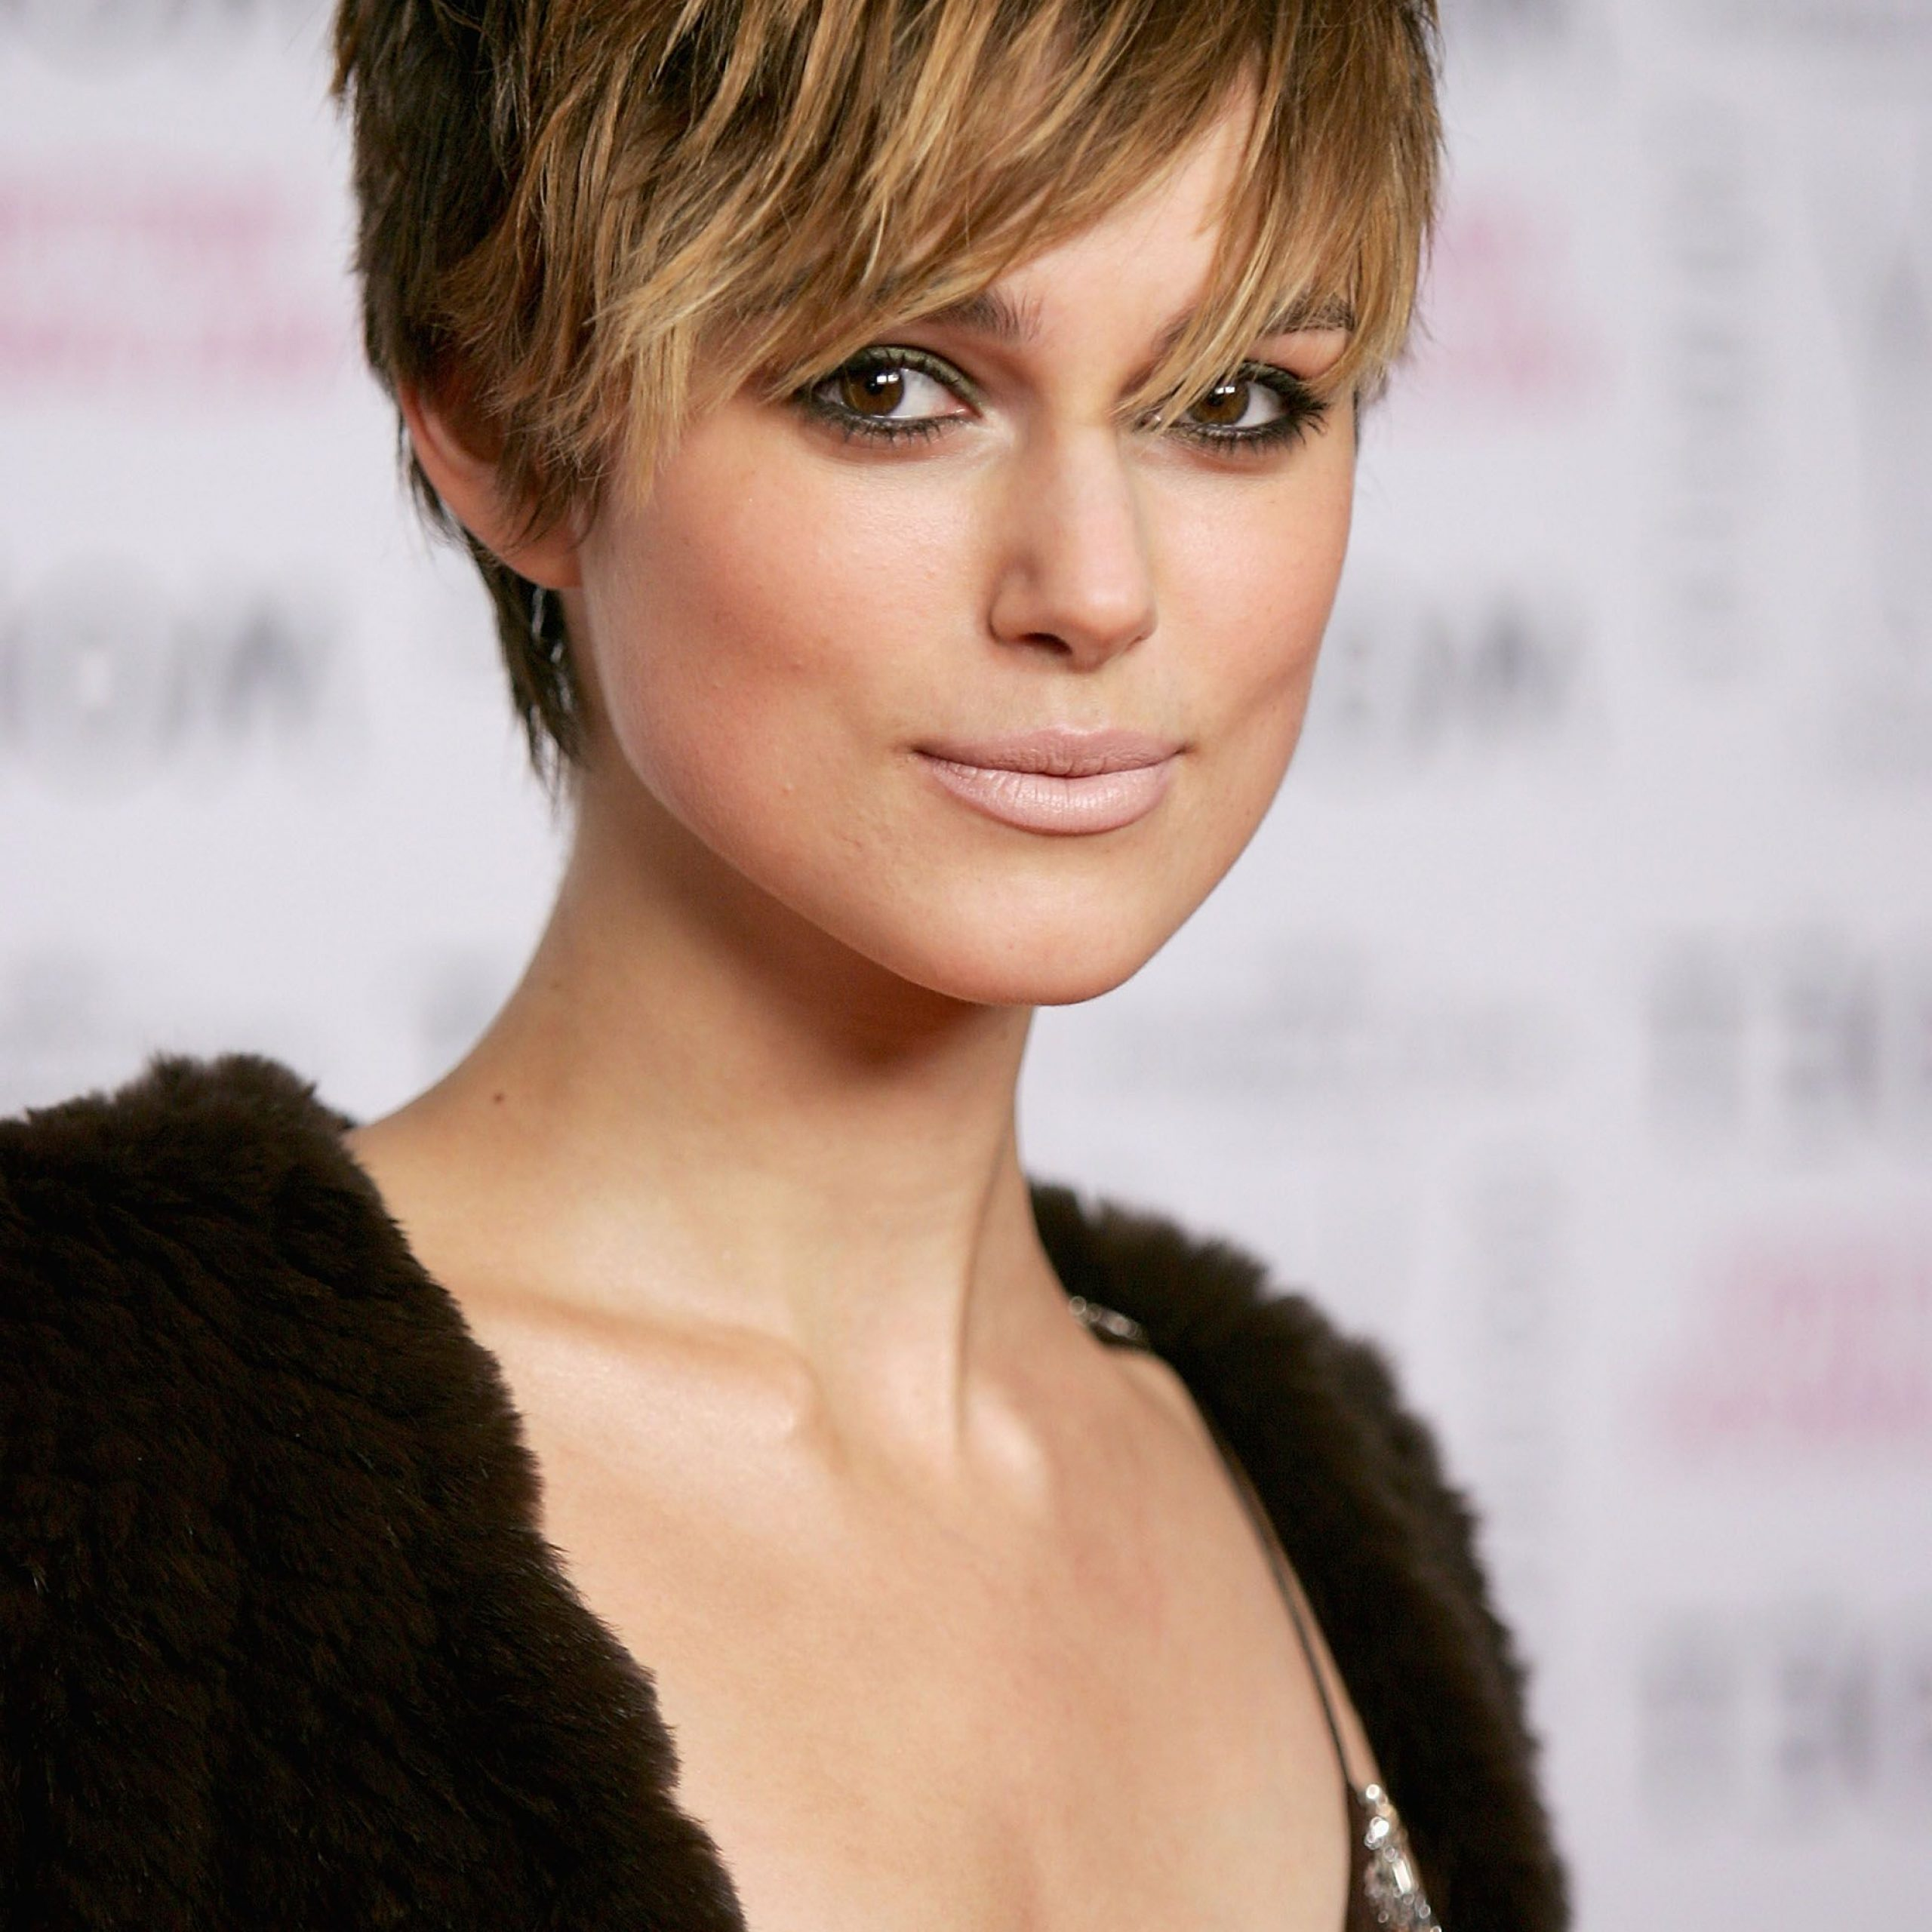 70 Best Pixie Cut Hairstyle Ideas 2019 – Cute Celebrity With Regard To Long Pixie Haircuts With Angled Layers (View 13 of 20)